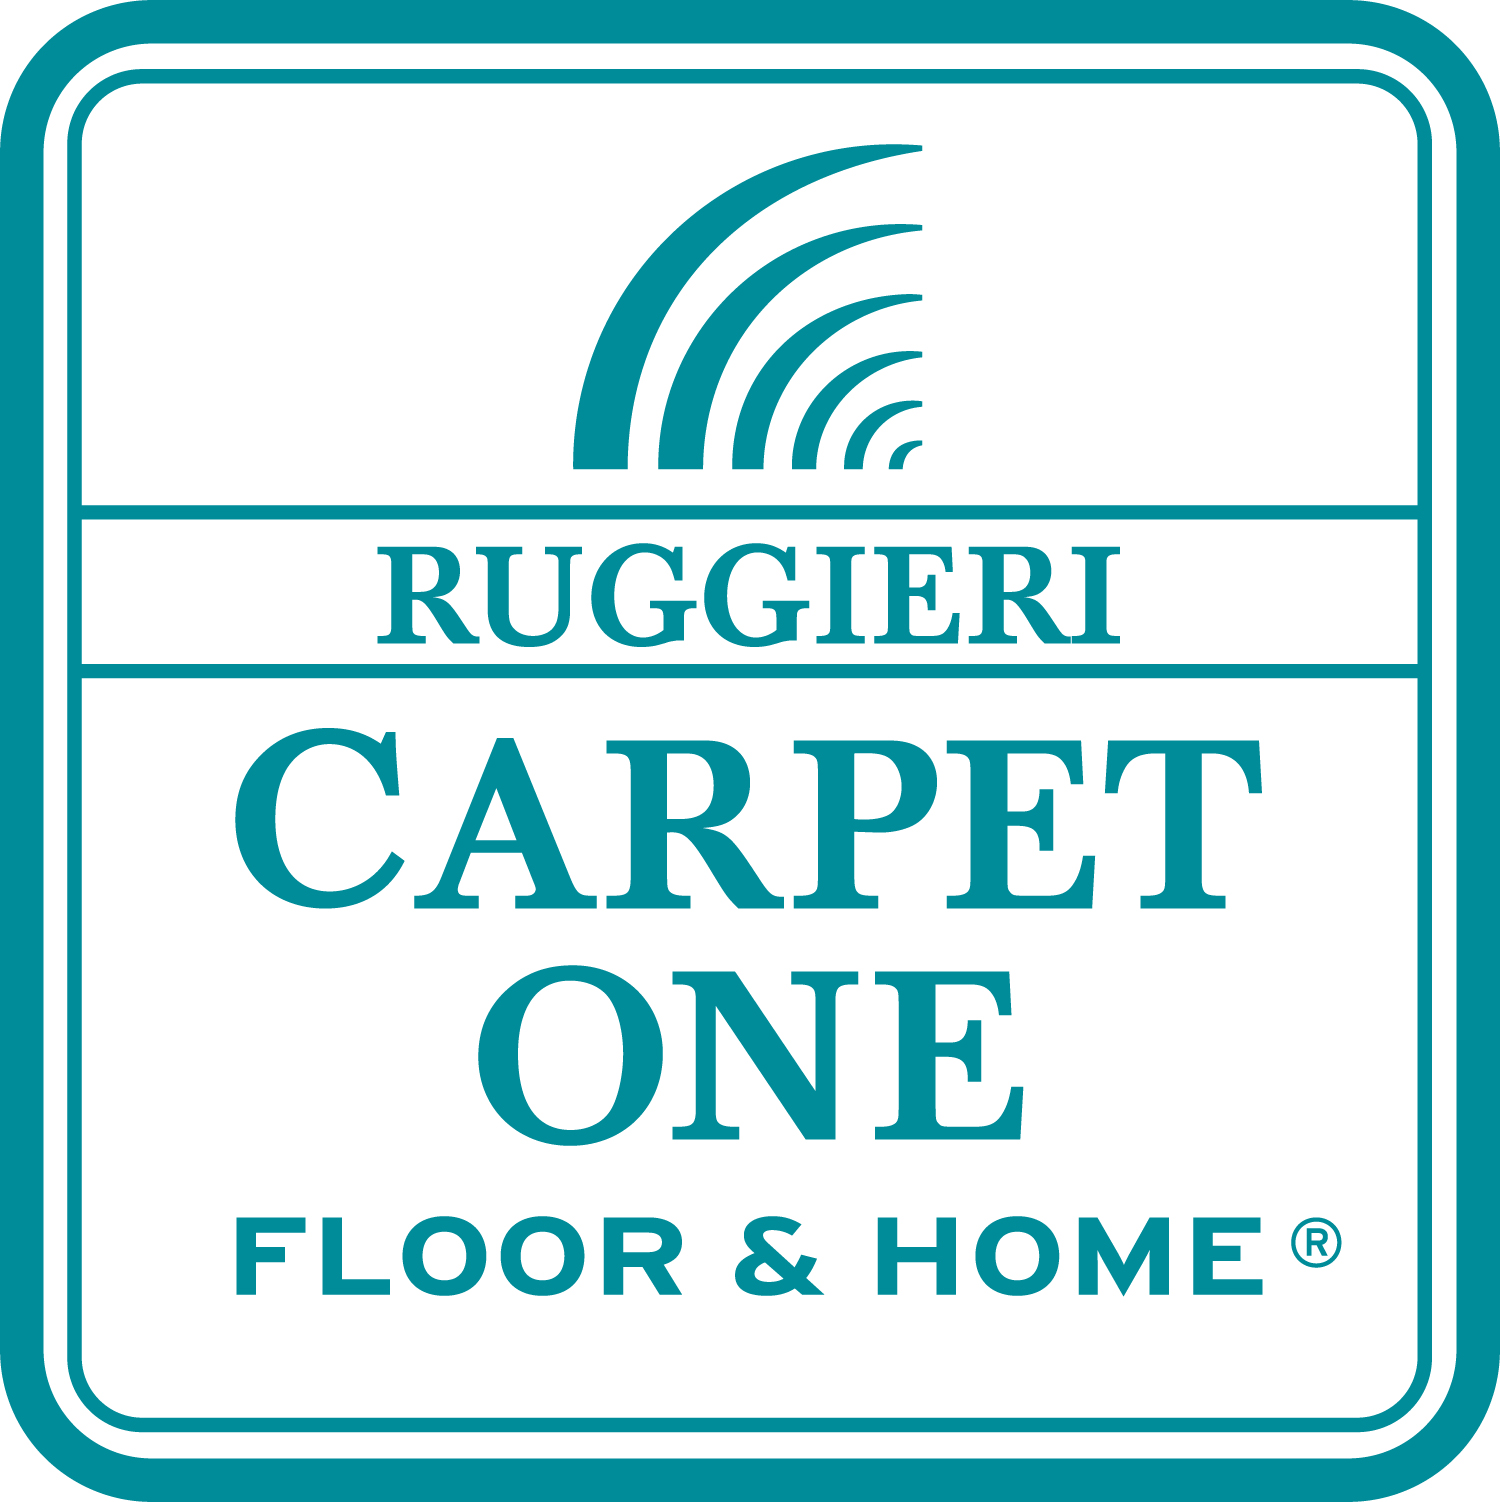 The logo for Ruggieri Carpet One, a 2021 Save The Bay event sponsor